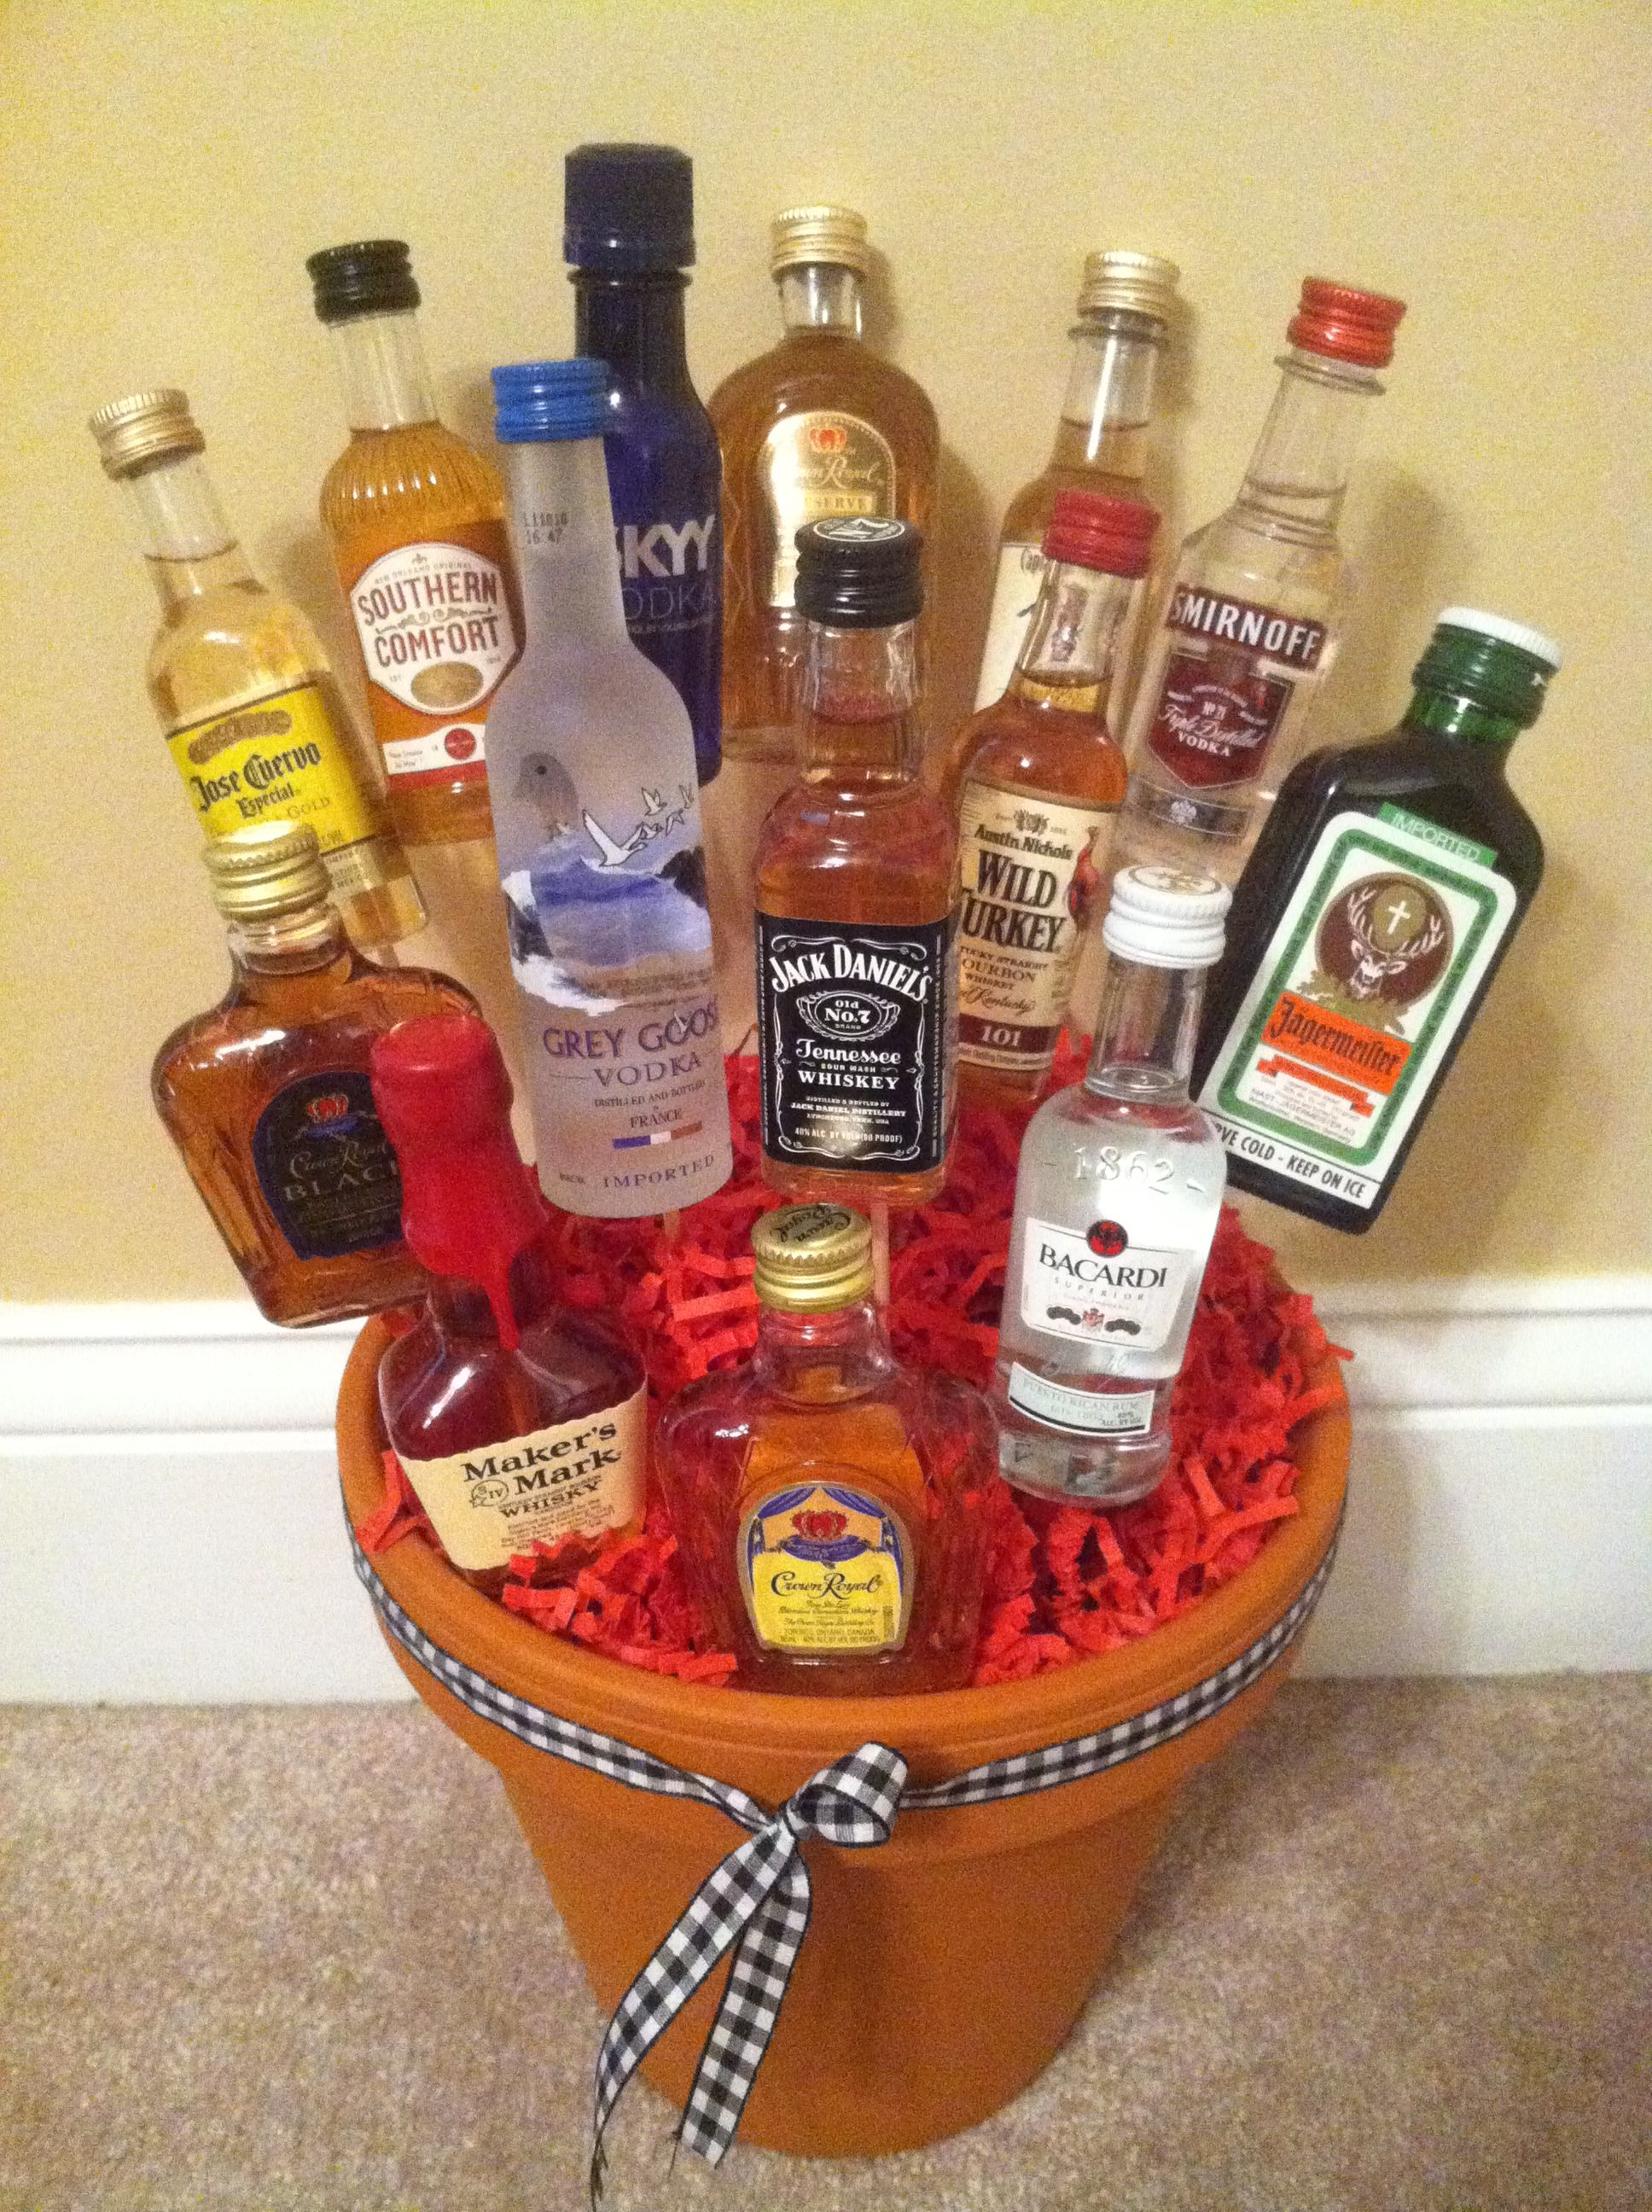 What to get my boyfriend for his 21st birthday? : Gifts